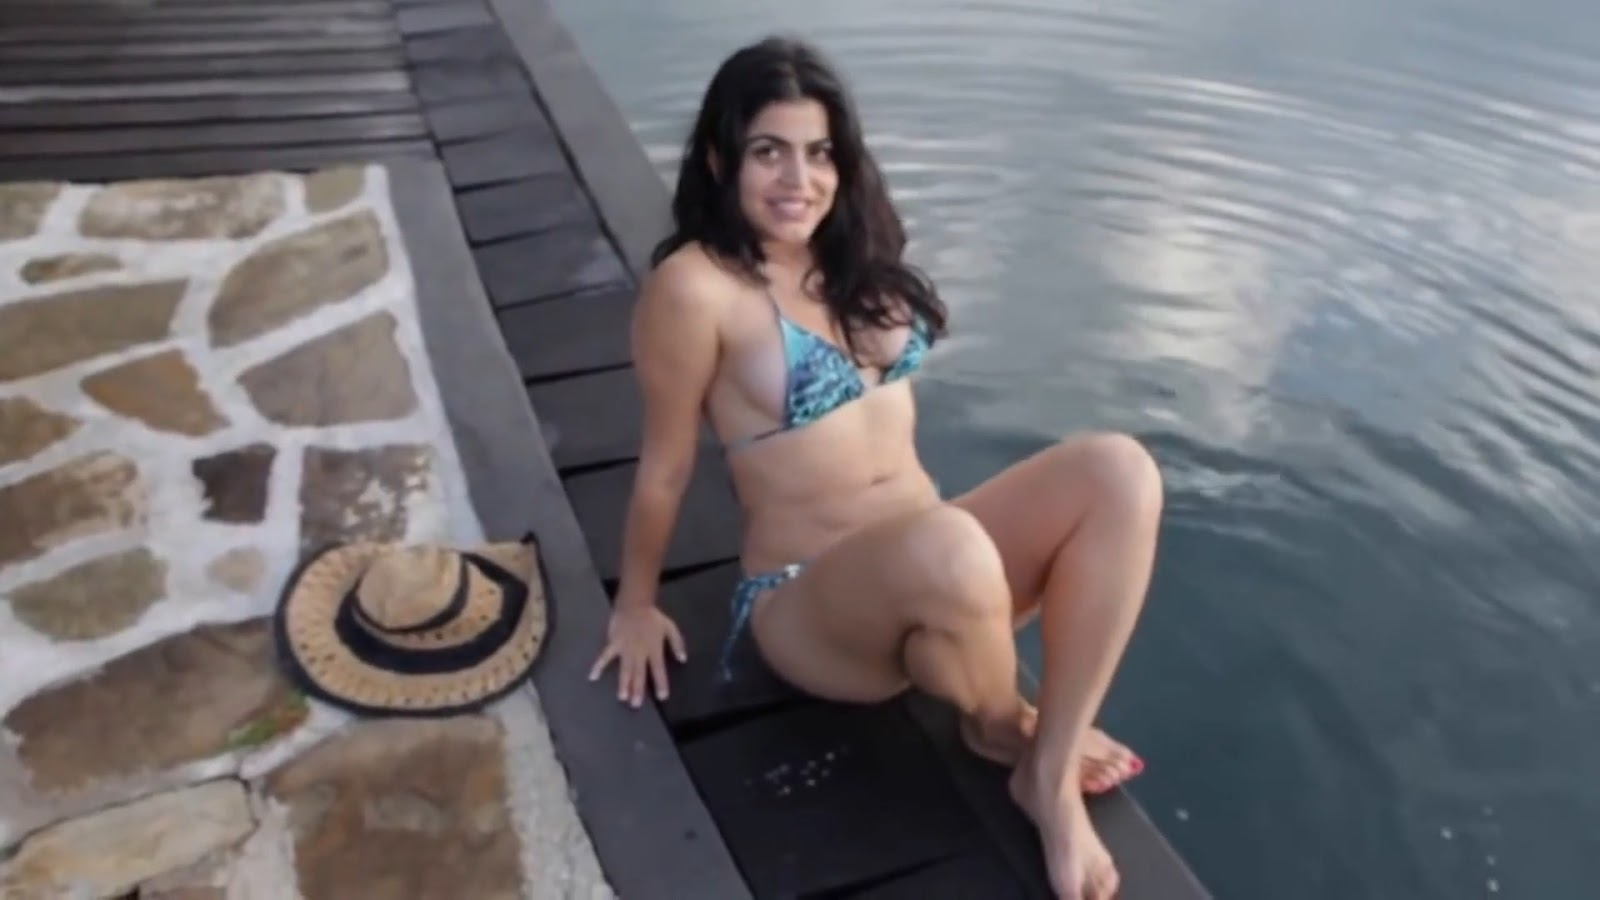 shenaz treasurywala hotshenaz treasurywala biography, shenaz treasurywala wiki, shenaz treasurywala, shenaz treasurywala instagram, shenaz treasurywala facebook, shenaz treasurywala hot, shenaz treasurywala open letter, shenaz treasurywala married, shenaz treasurywala husband, shenaz treasurywala bikini, shenaz treasurywala hot pics, shenaz treasurywala twitter, shenaz treasurywala kiss, shenaz treasurywala age, shenaz treasurywala boyfriend, shenaz treasurywala feet, shenaz treasurywala letter to pm, shenaz treasurywala cleavage, shenaz treasurywala nipple